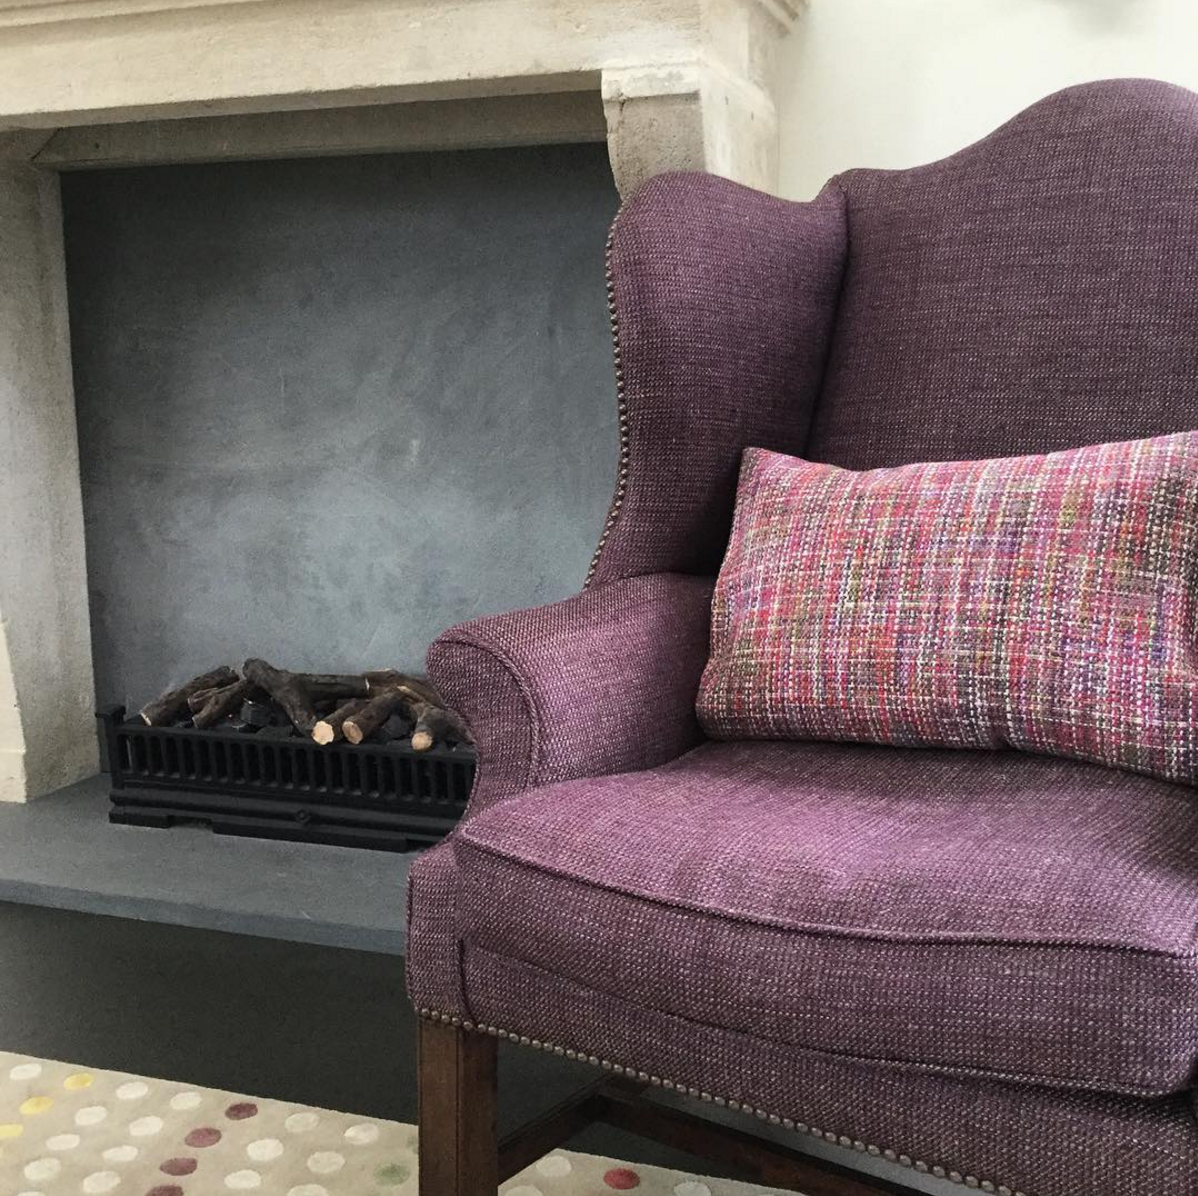 Reupholster Sofa South London Manhattan Bed With Built In Bluetooth Speakers Adelaide Villa Re Upholstering When Is It Worth Doing How Much Antiqued Brass Nailhead New Feather Down Seat Cushion Pierre Frey Fabric